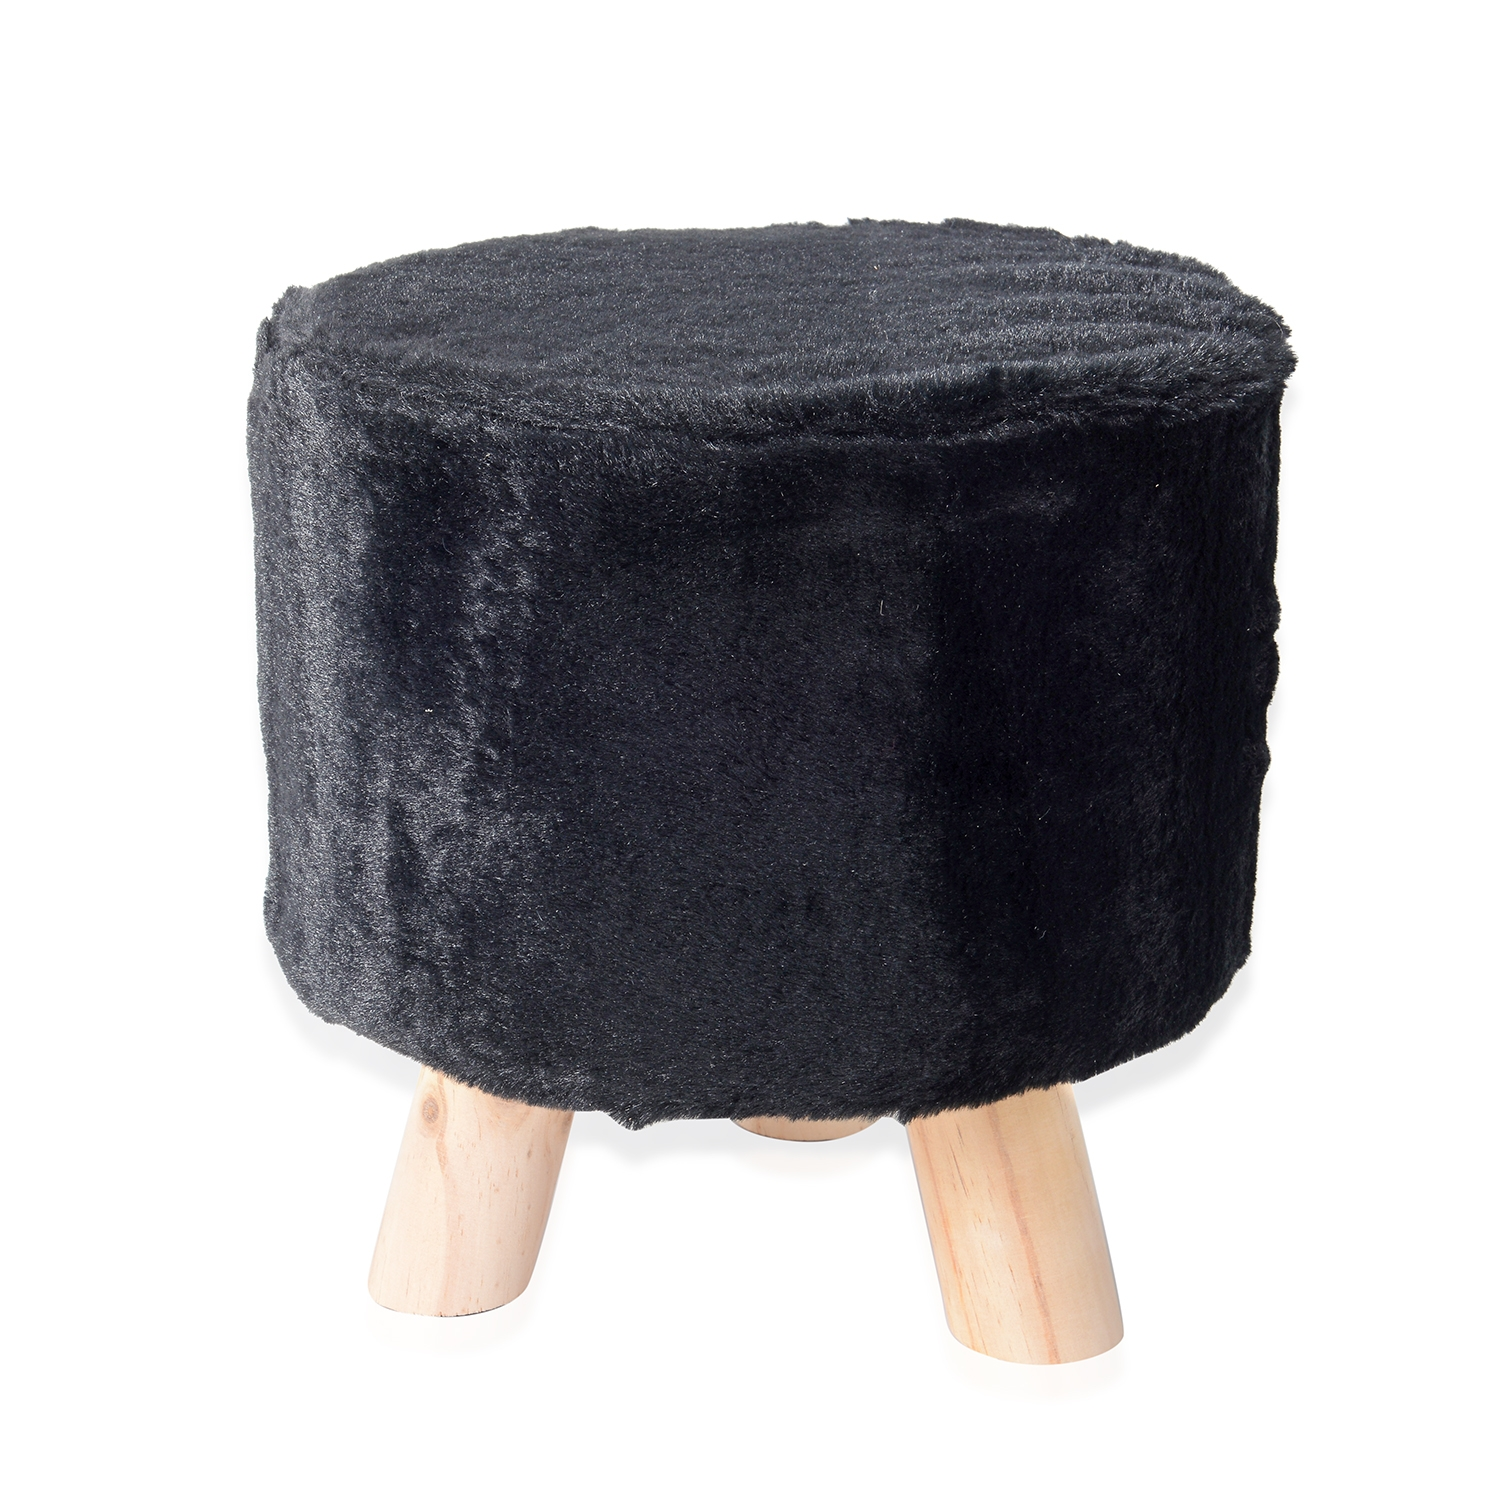 Astonishing Black Faux Fur Round Wooden Stool 11X11 In Cjindustries Chair Design For Home Cjindustriesco